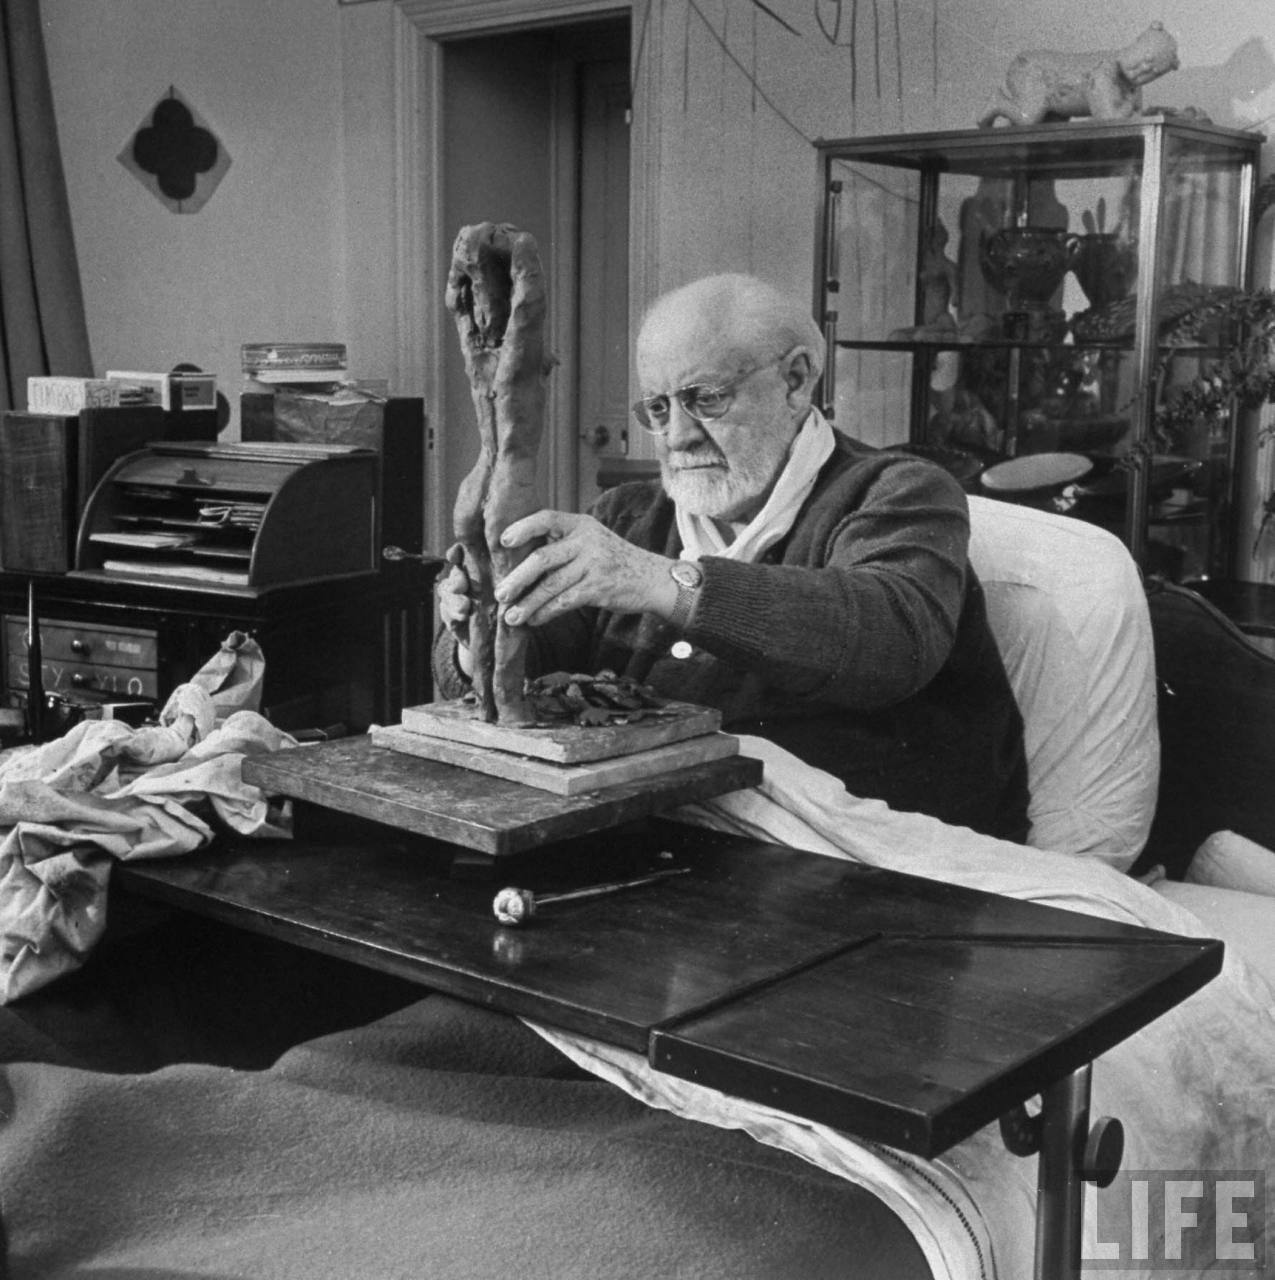 Henri Matisse sculpting nude female figure while sitting in bed in his apartment, France, by Dmitri Kessel, 1951. Google LIFE Archive